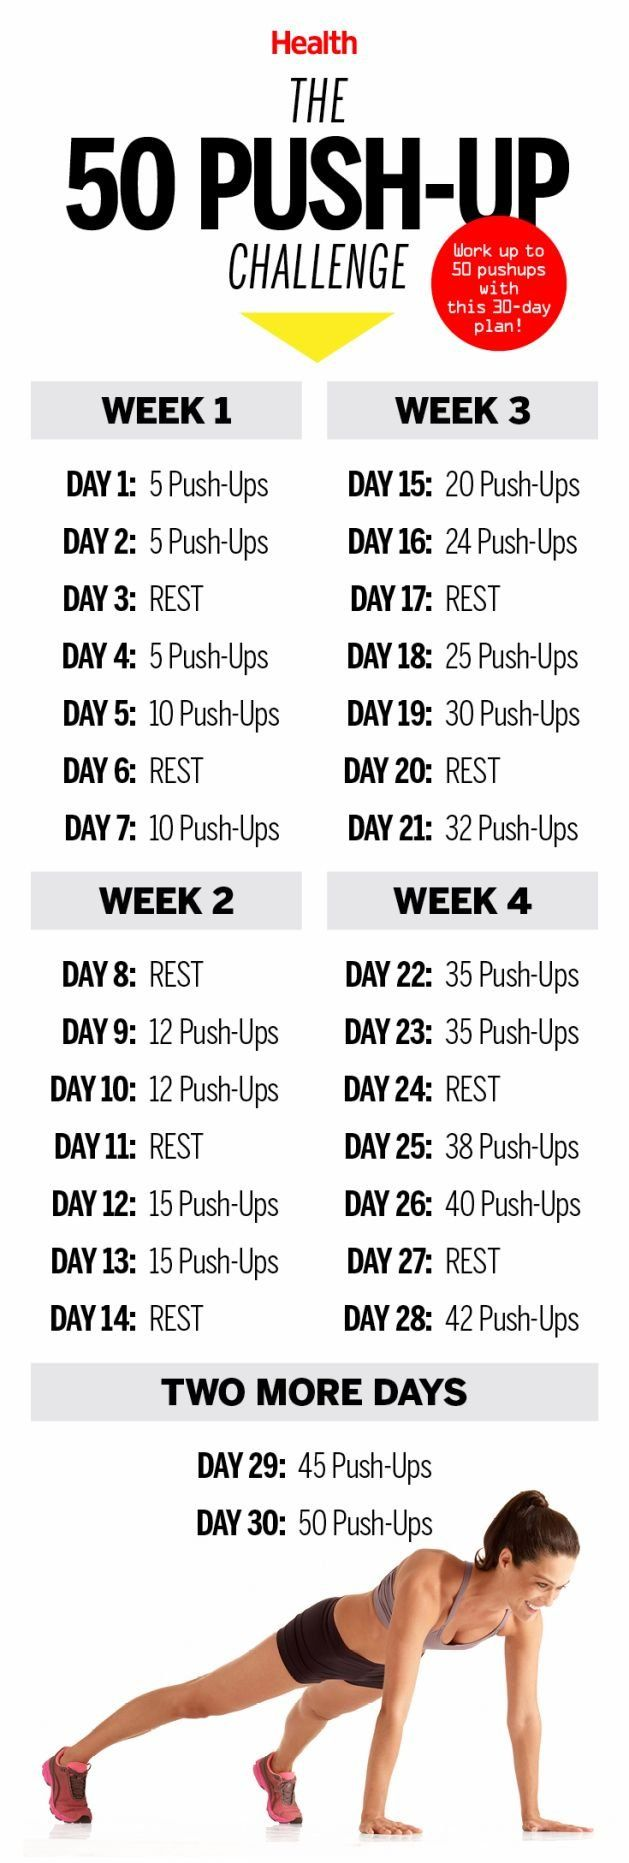 This 50 Push-Up Challenge Will Transform Your Body in 30 Days | Health.com